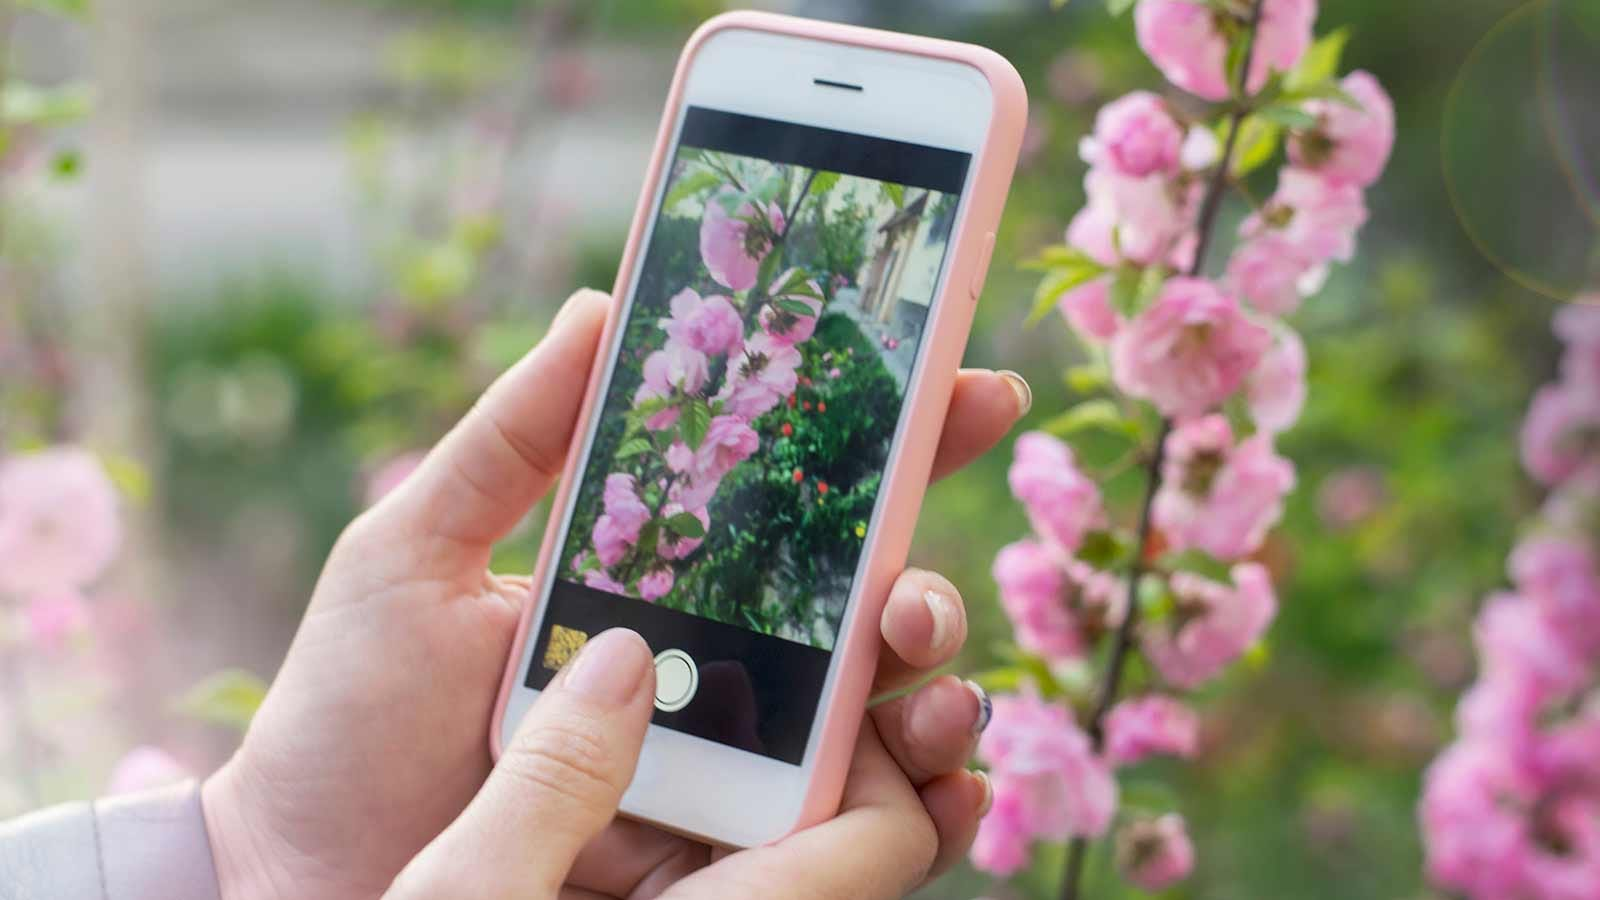 Someone taking a photo of pretty garden flowers with an iPhone.